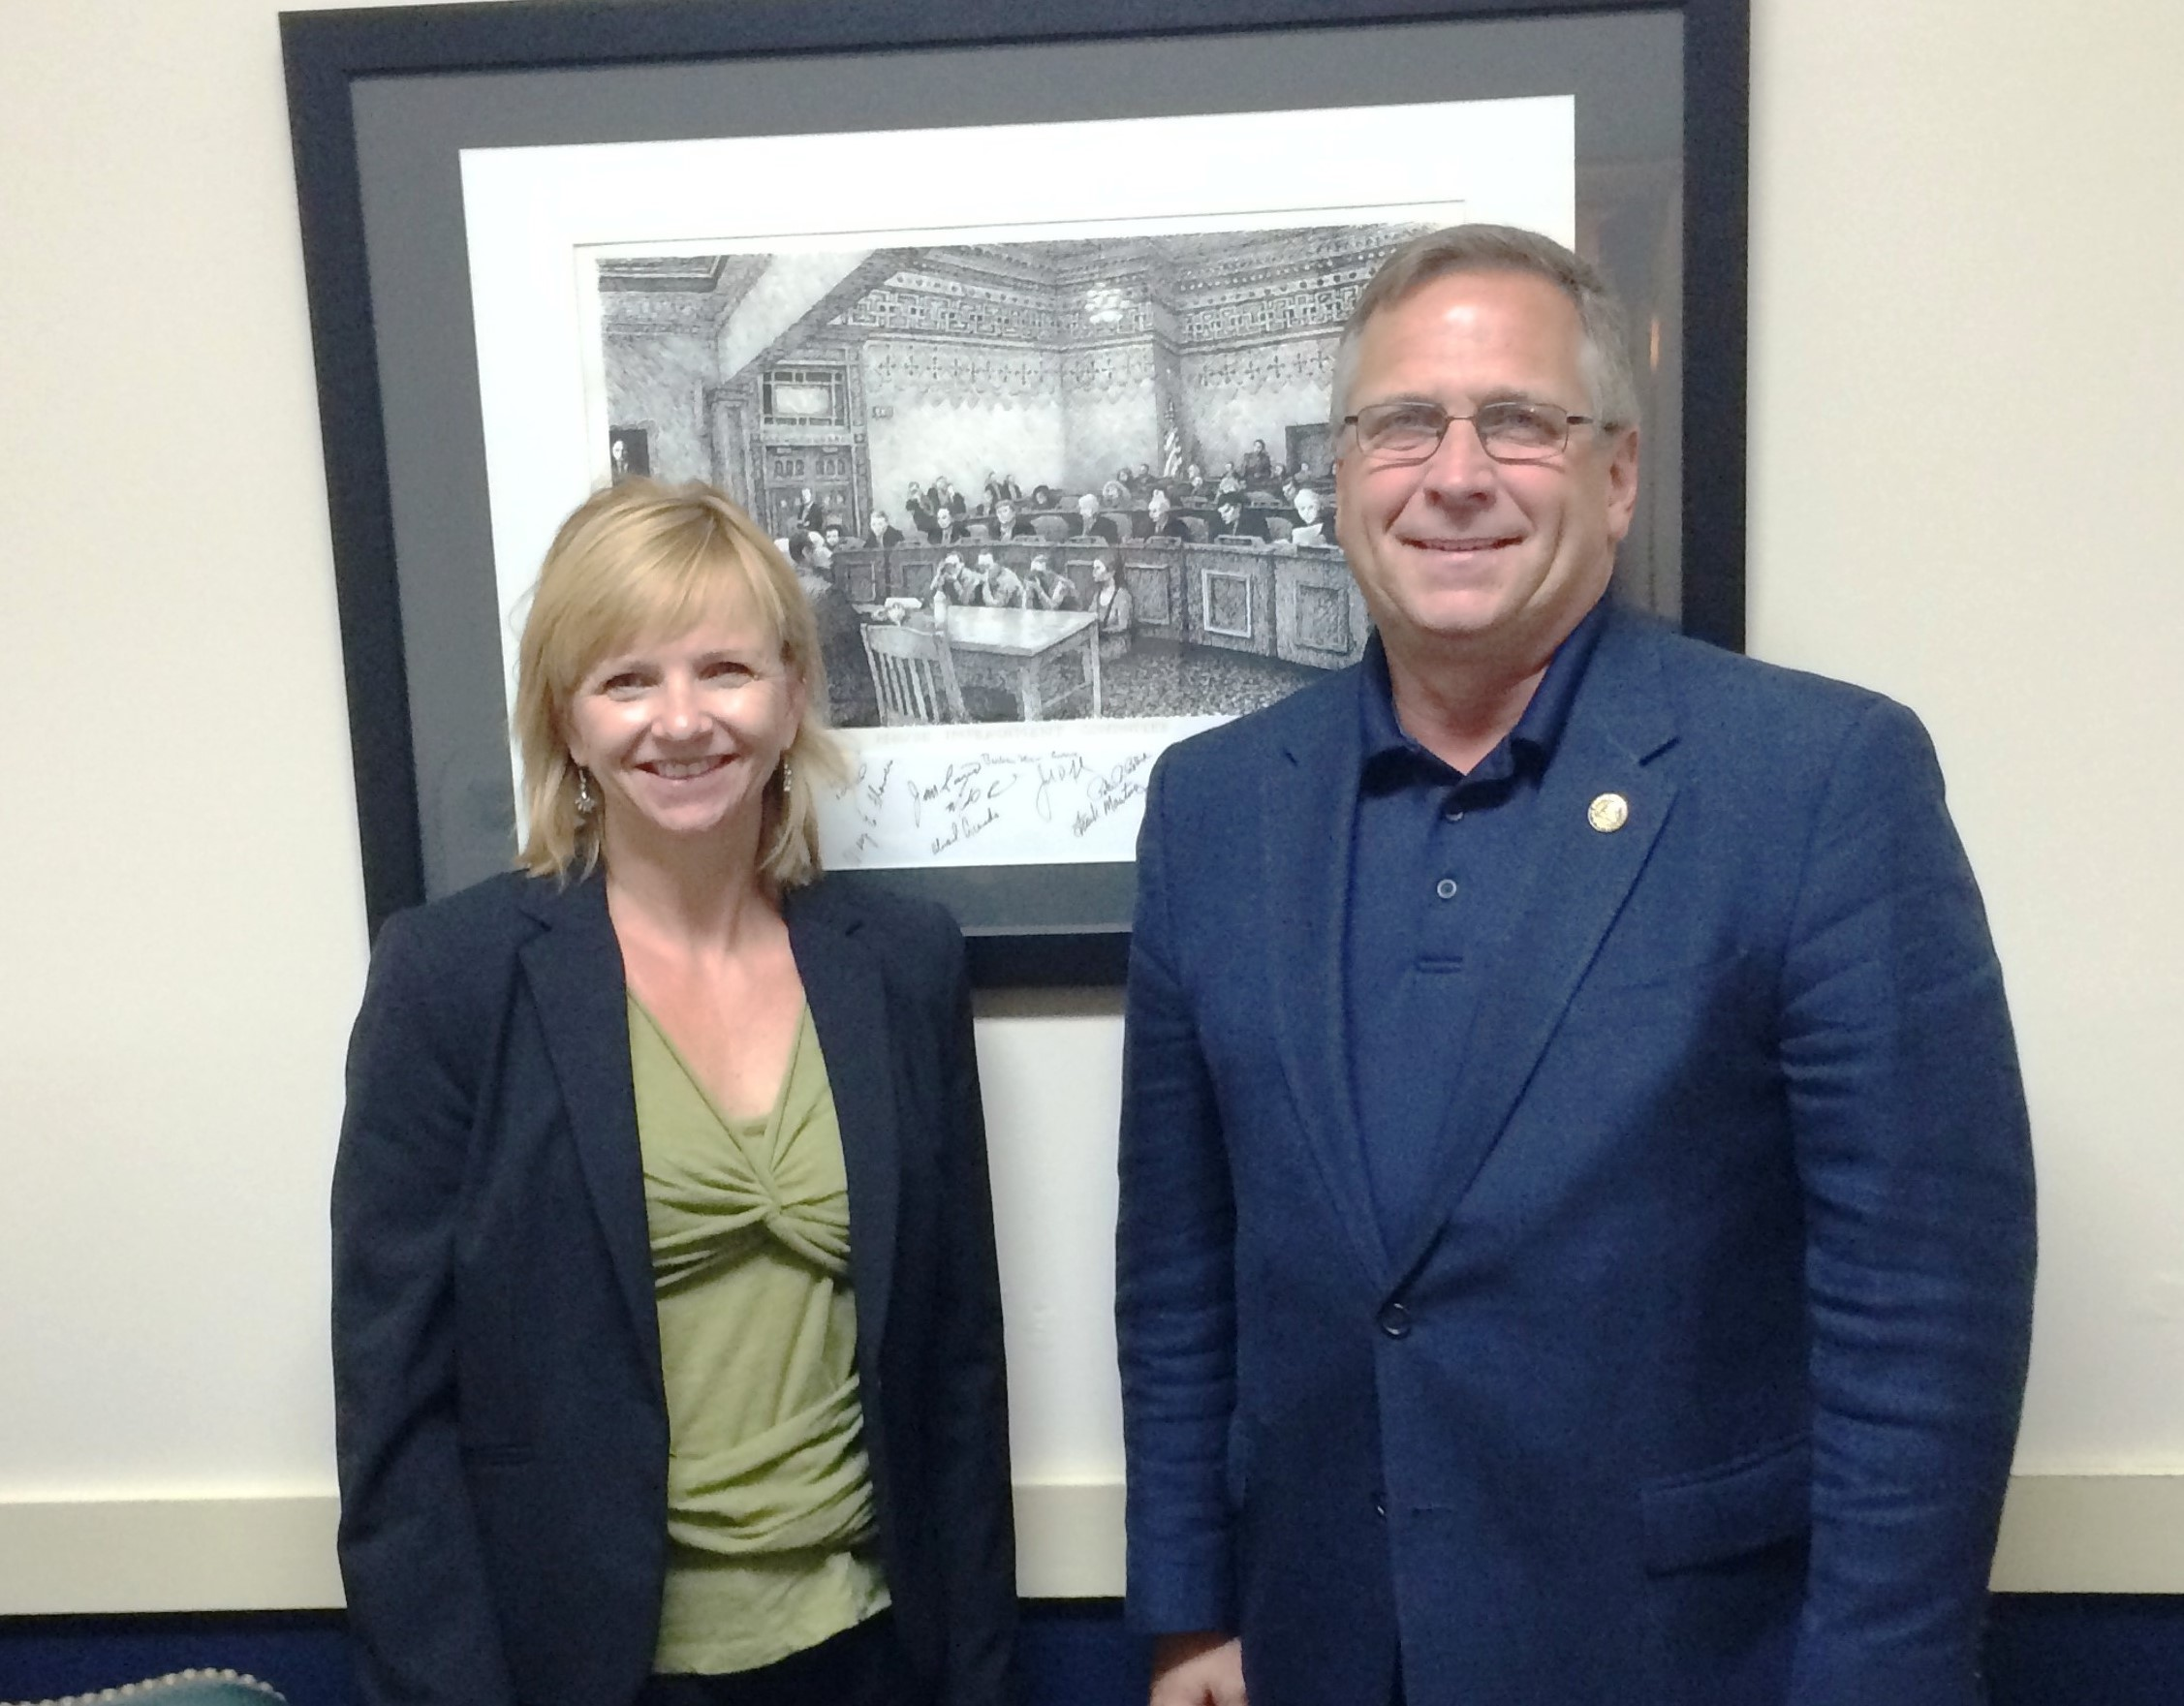 Dr. Cathleen Chwalisz and Rep. Mike Bost (R-Il)